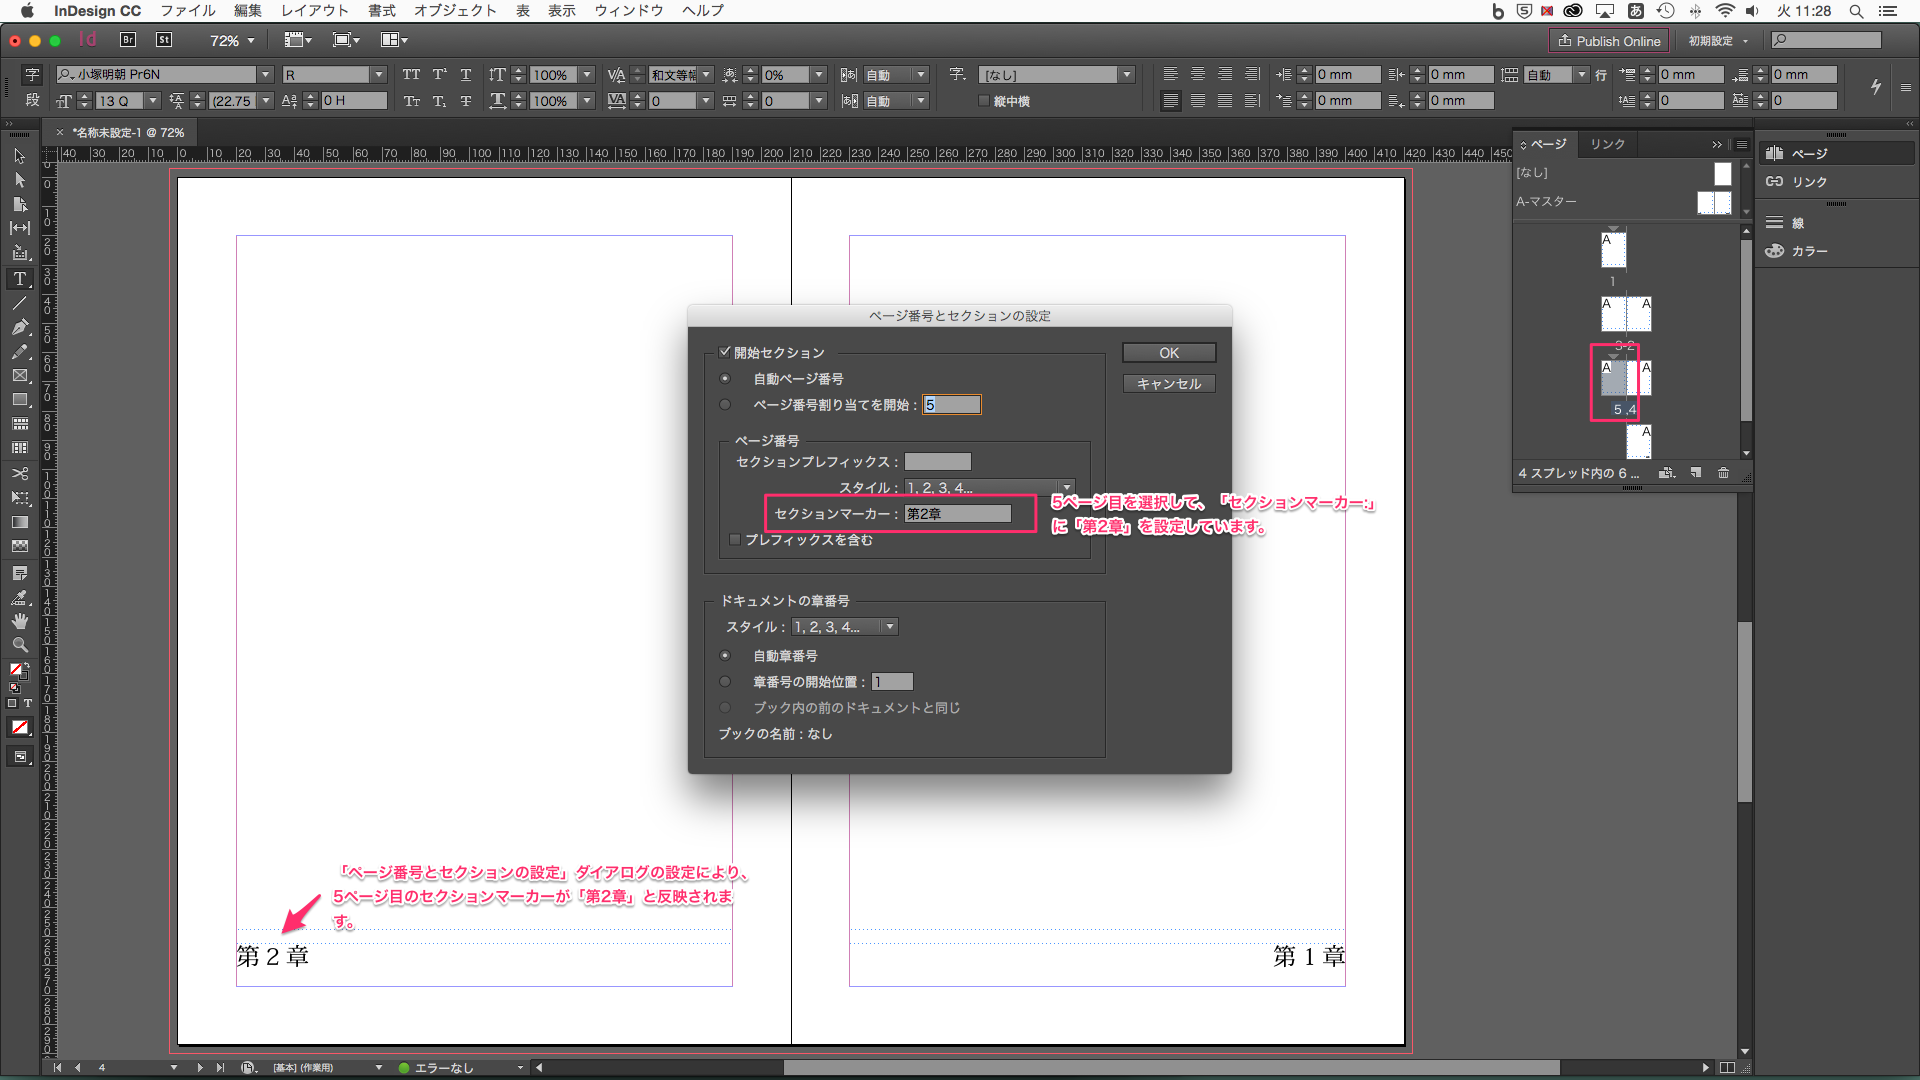 http://www.too.com/support/toocare/faq/indesign_section_marker_2.png